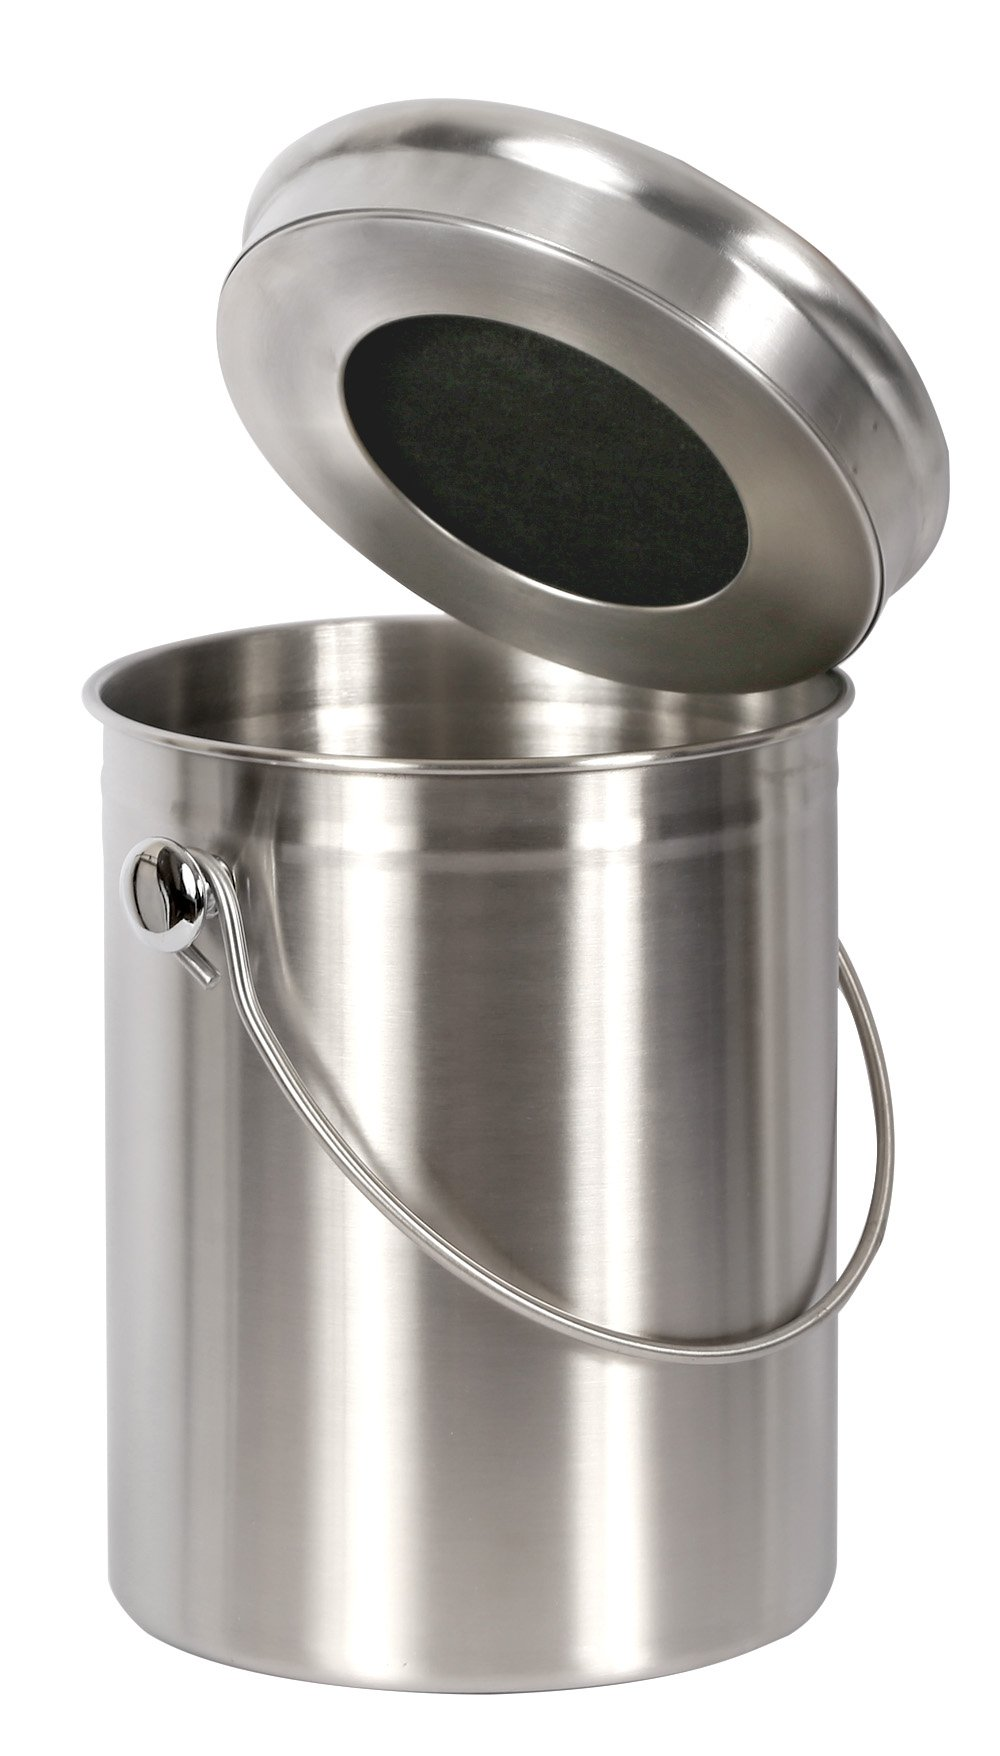 Estilo Stainless Steel Compost Pail, 1 Gallon Compost Bin, 2 Free Odor Absorbing Filters Included